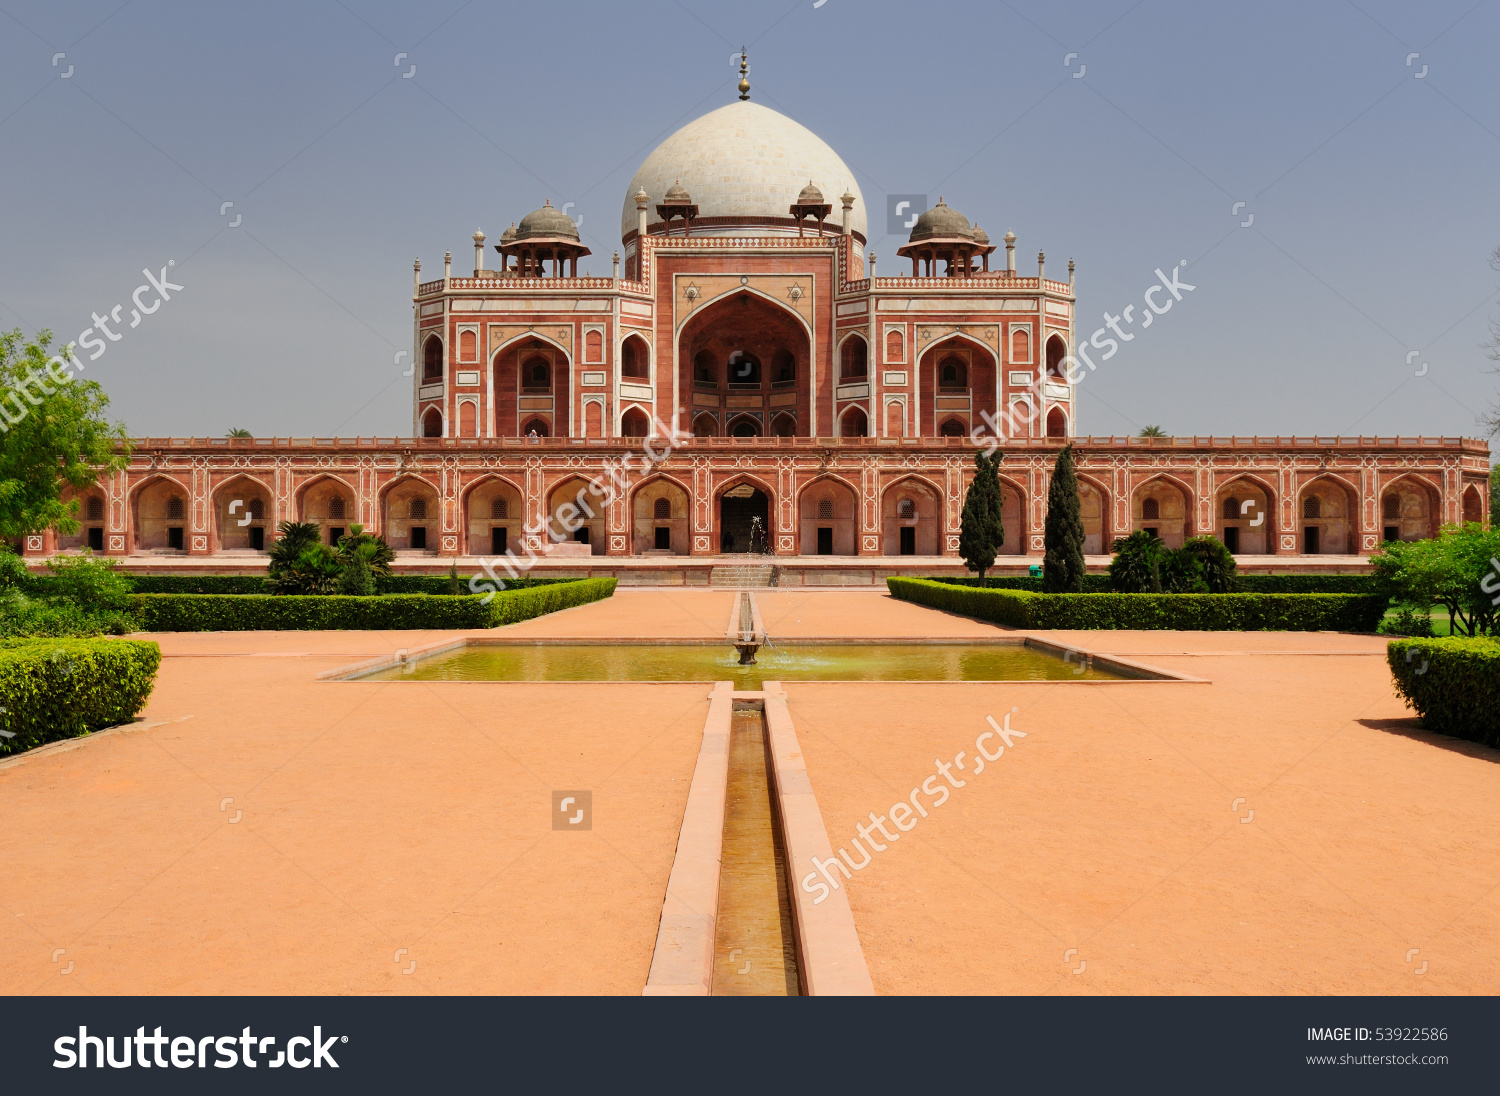 Humayuns Tomb Delhi Brilliant Example Early Stock Photo 53922586.